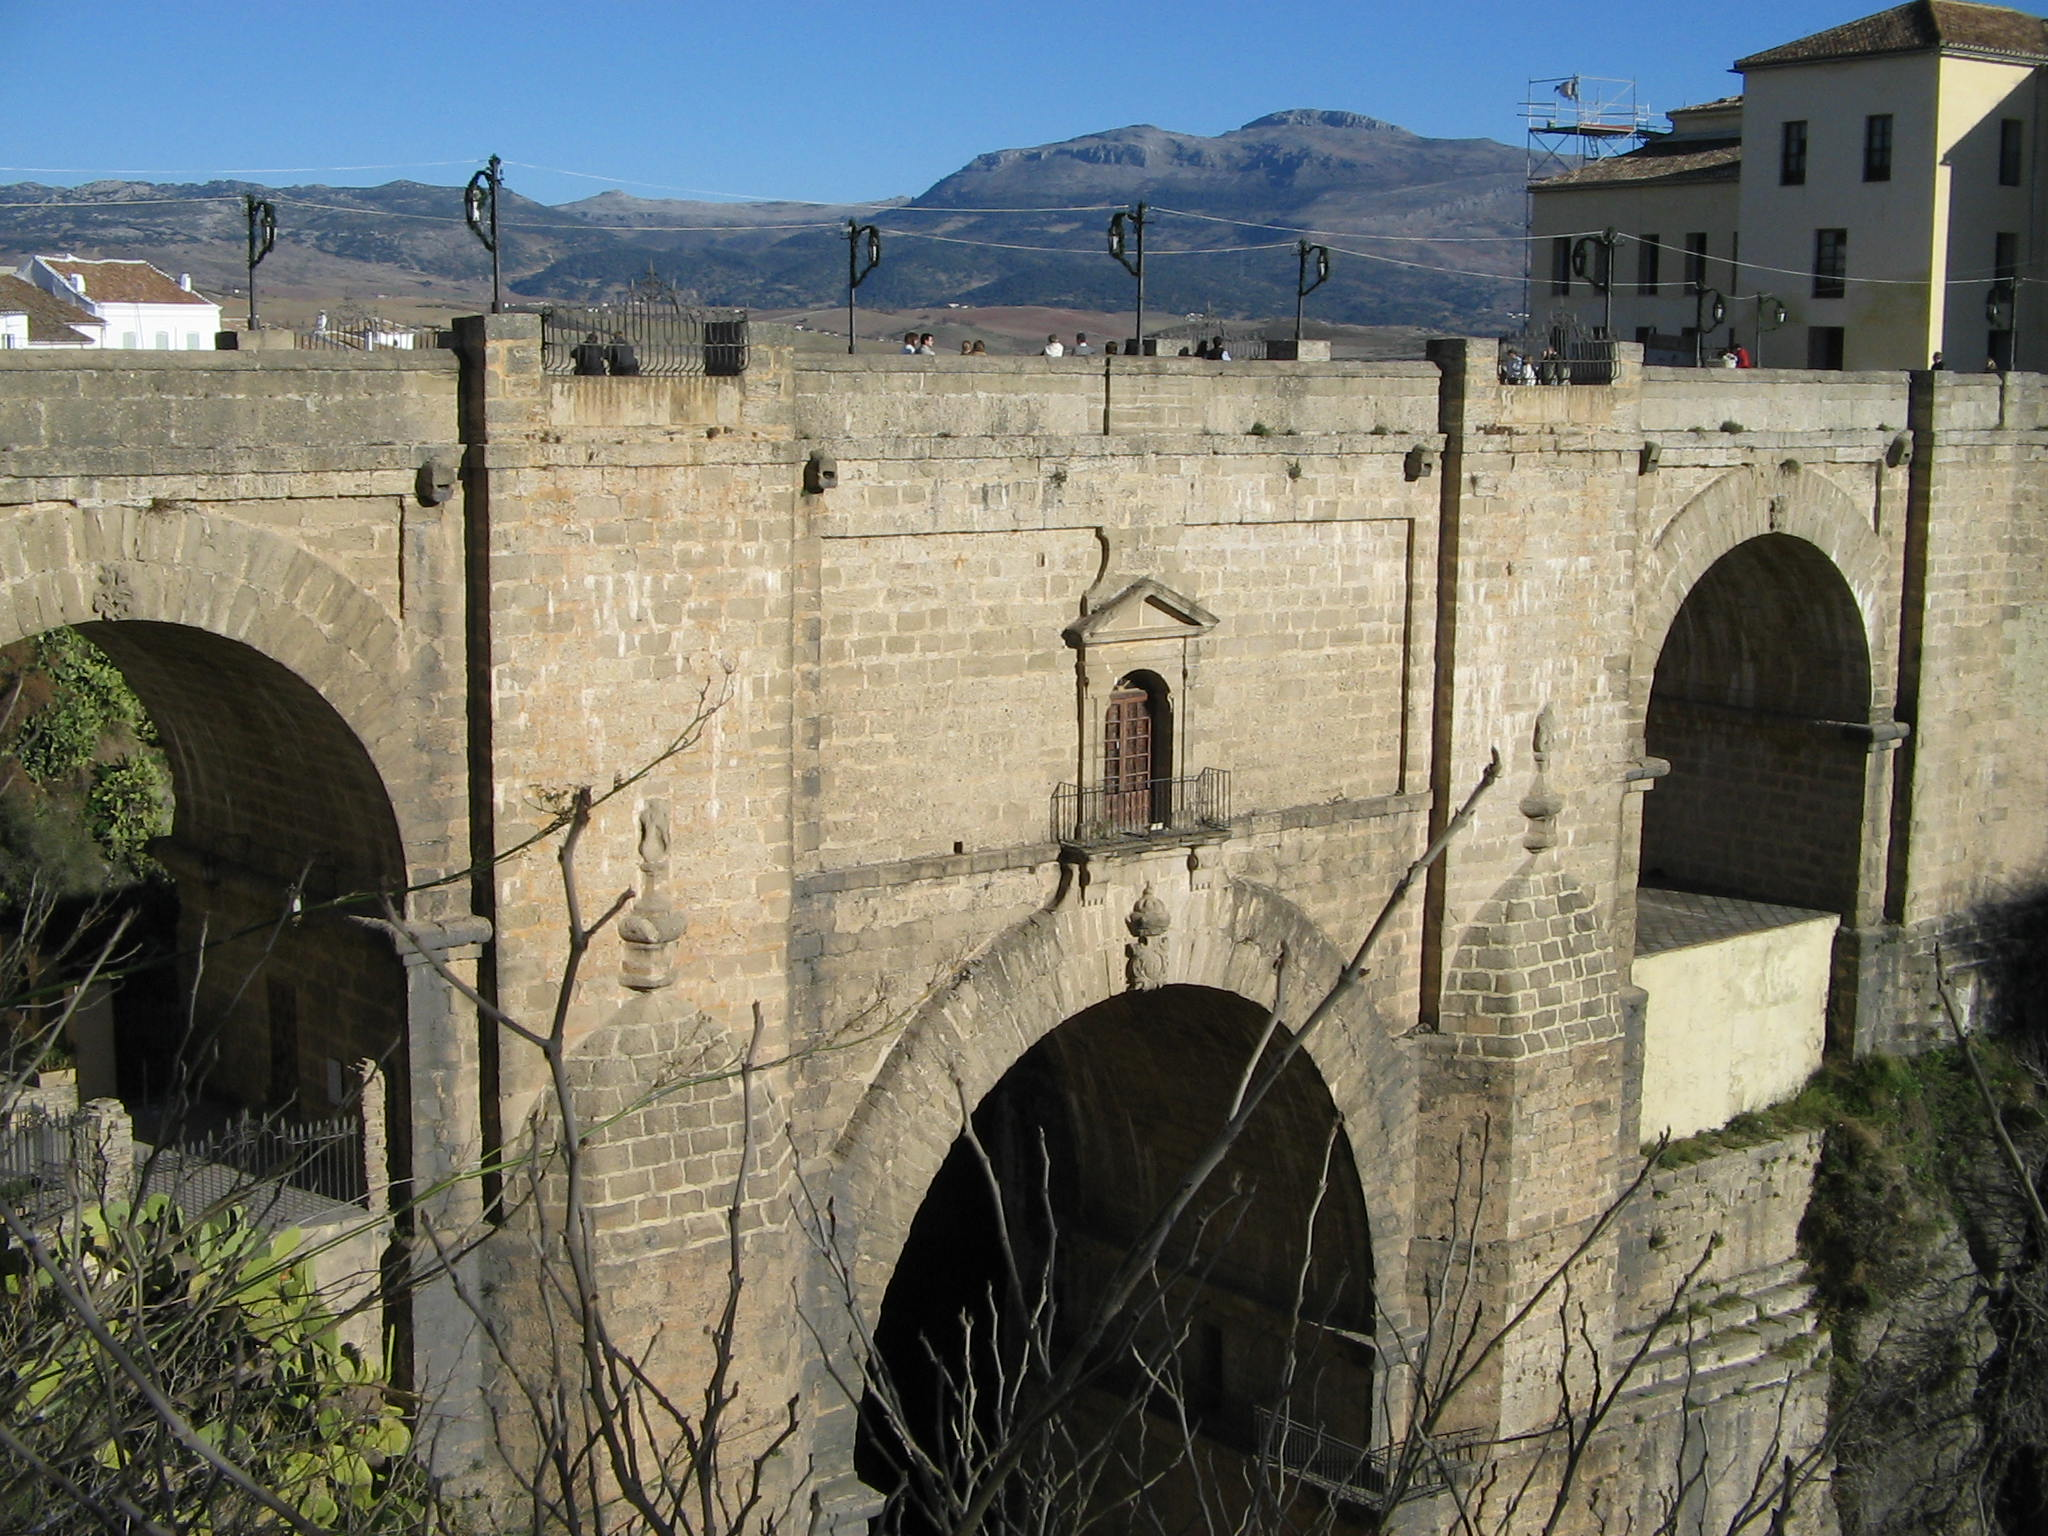 Ronda Spain  City pictures : 35 Amazing Pictures of Ronda, Spain